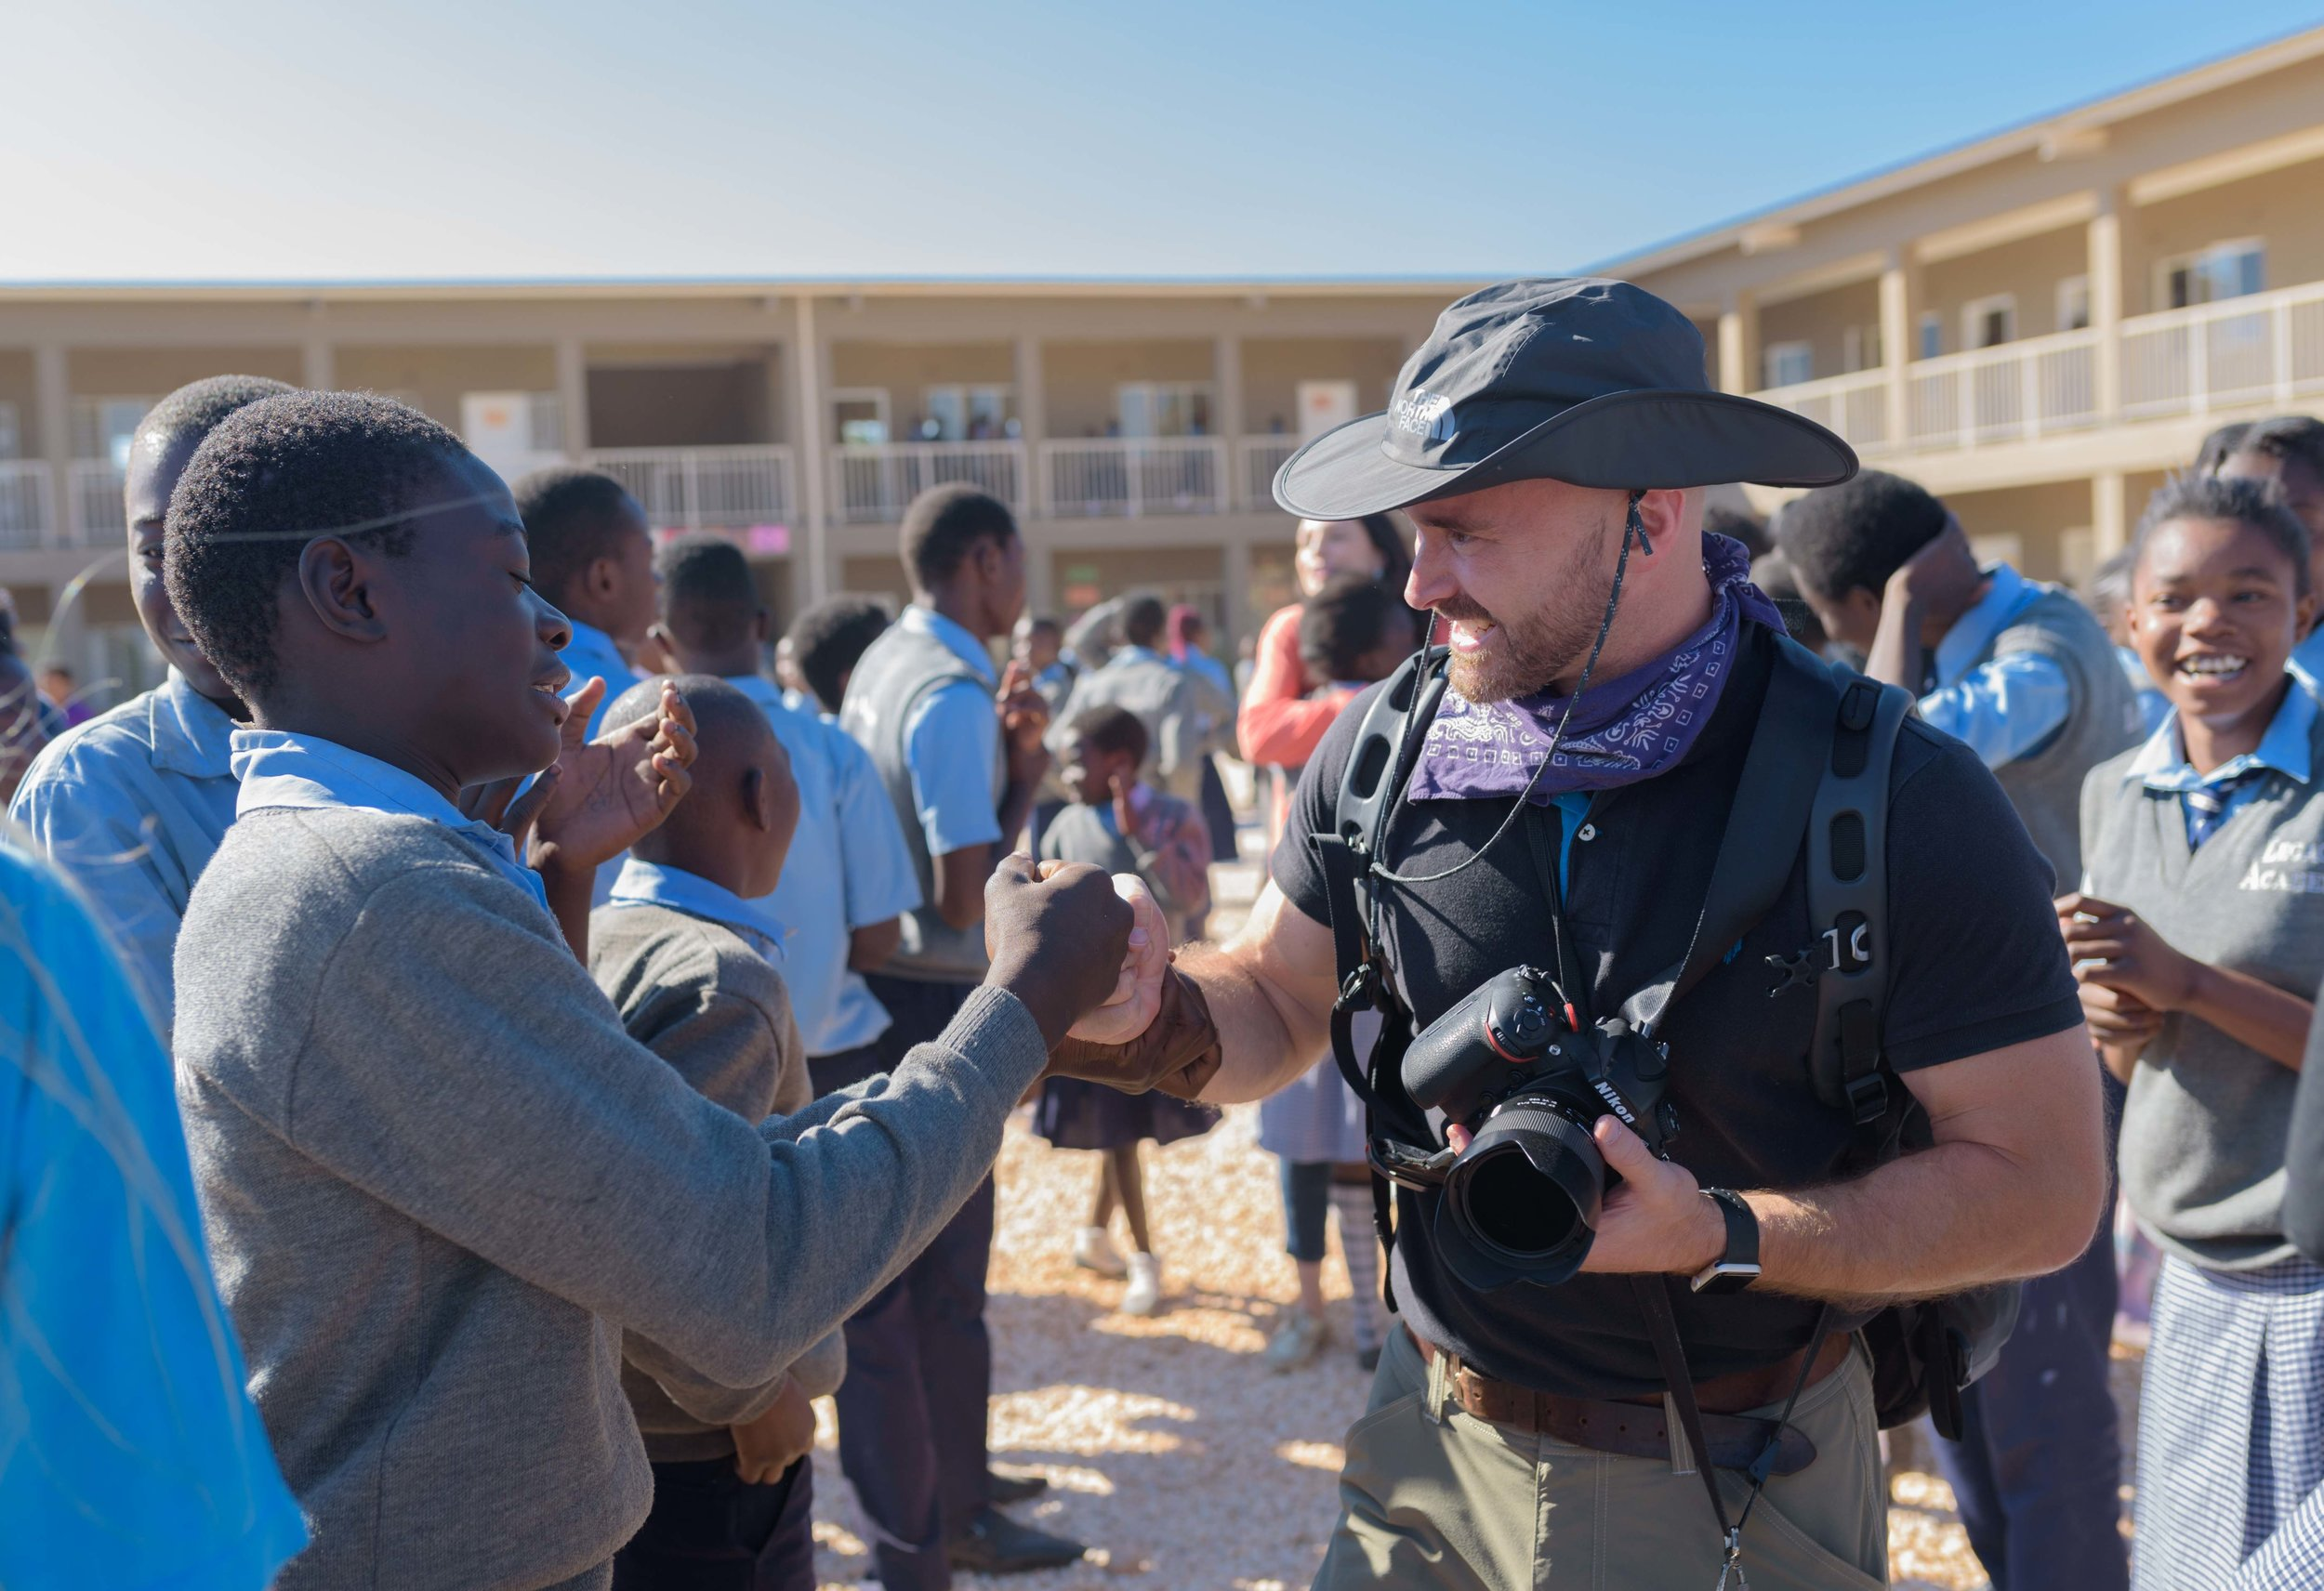 Contact Marshall - For the last 9 years, Marshall Foster has filmed and photographed in over 20 countries worldwide. His passion is for people, and for revealing the issues and numerous challenges they may face.